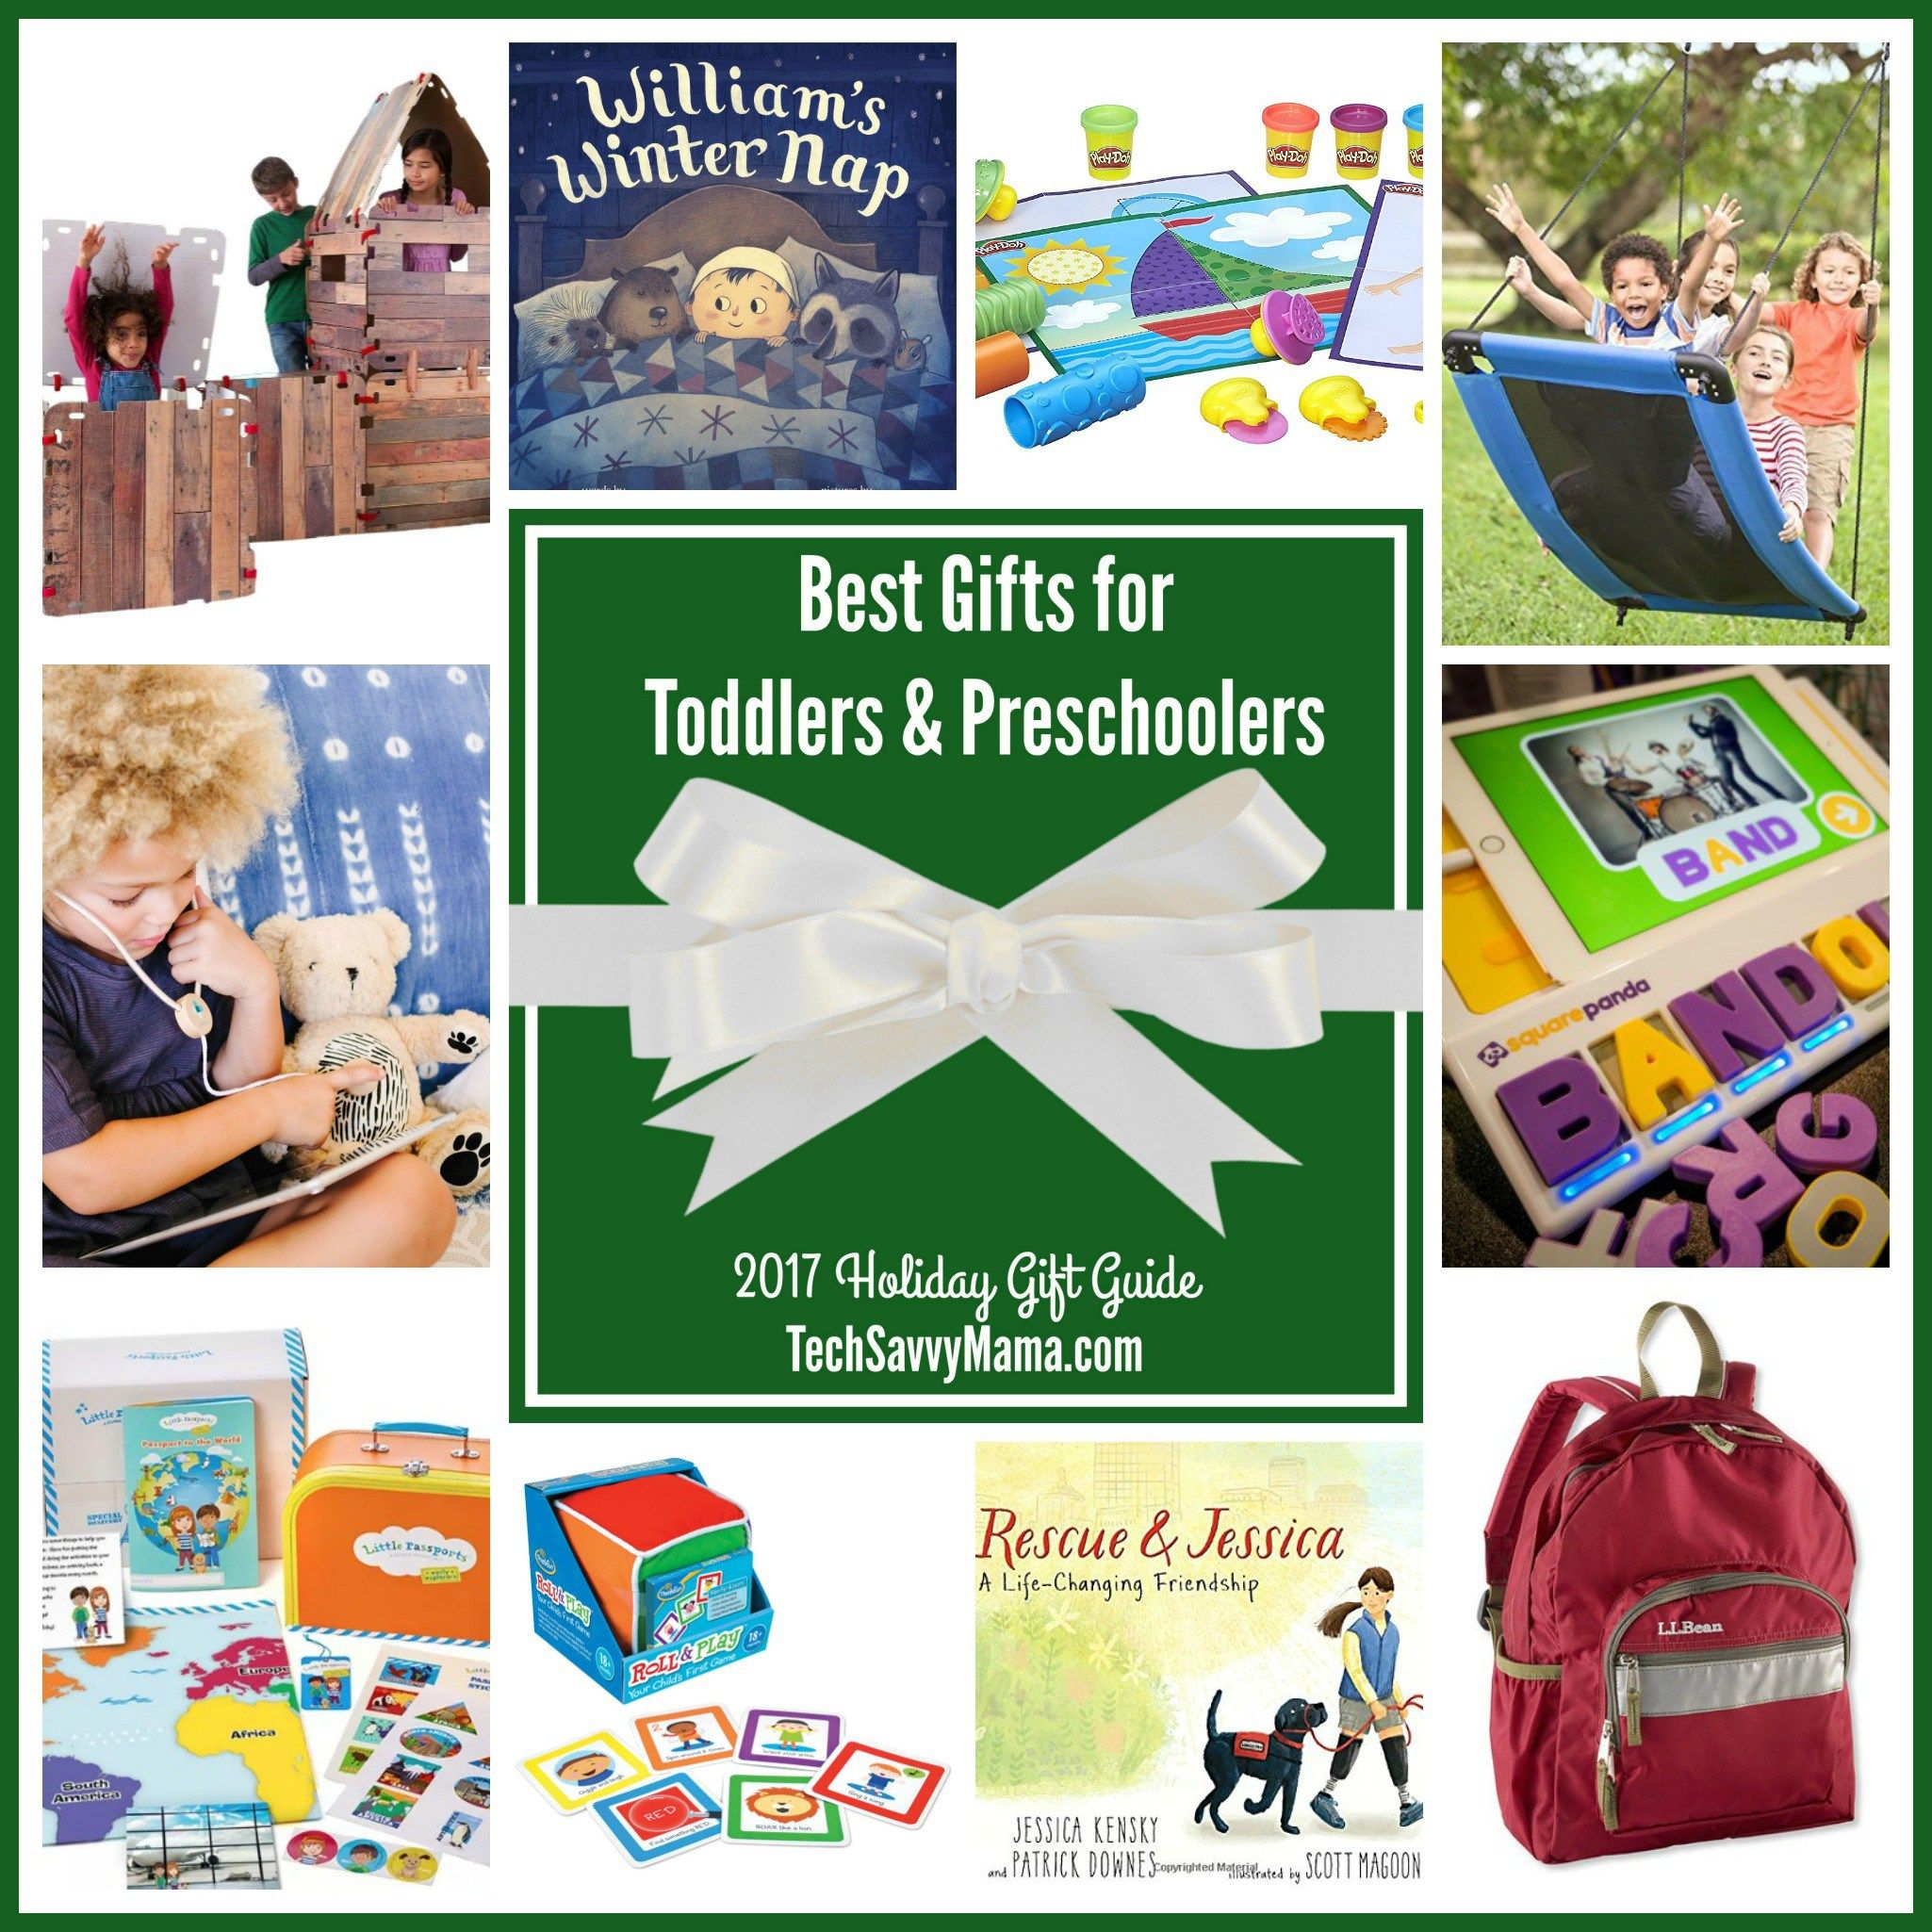 2017 Gift Guide Gifts for Toddlers & Preschoolers What are the